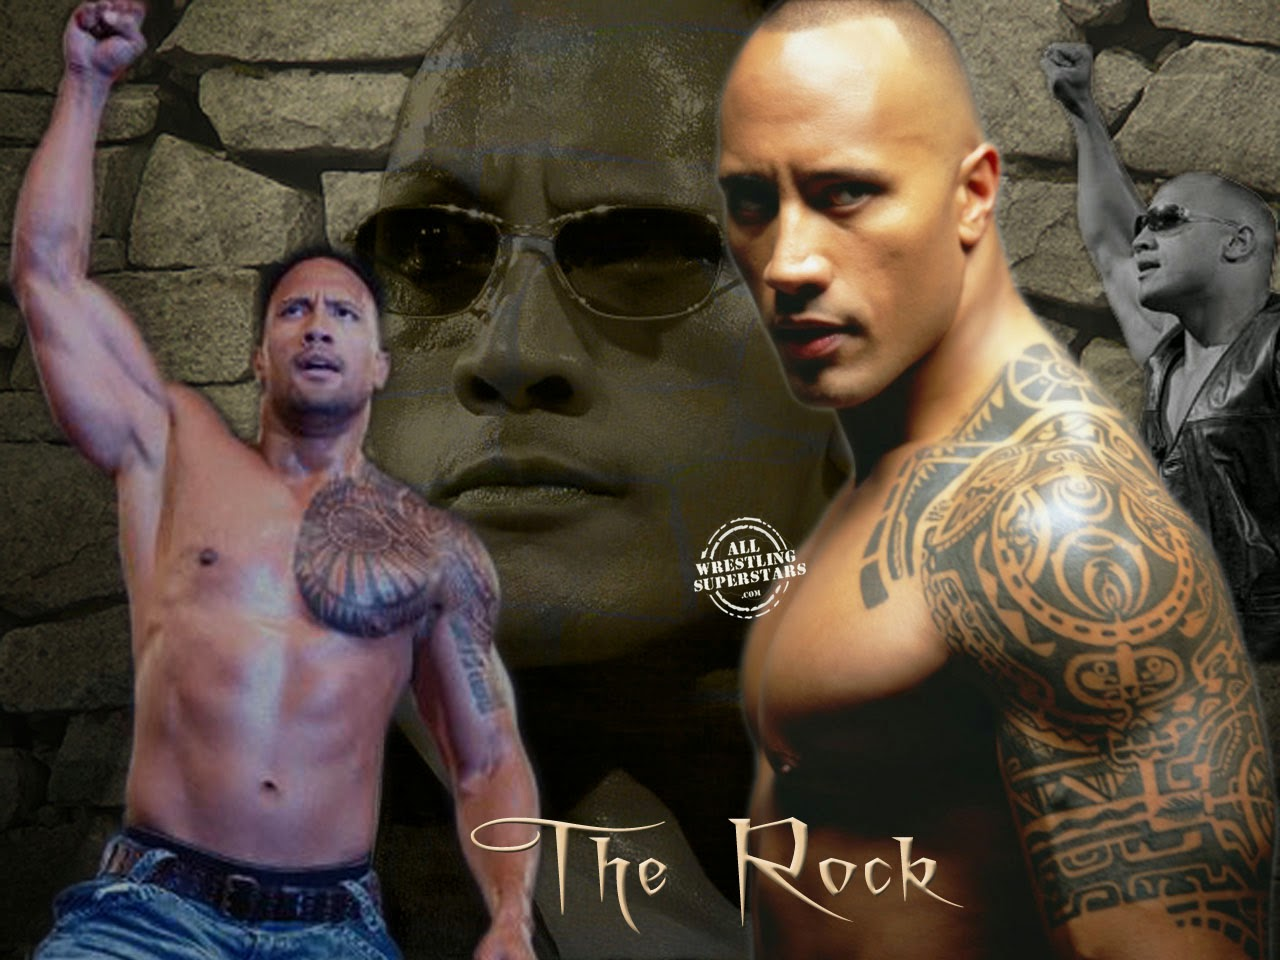 the rock hd wallpaper | full hd wallpaper for pc | download pc hd